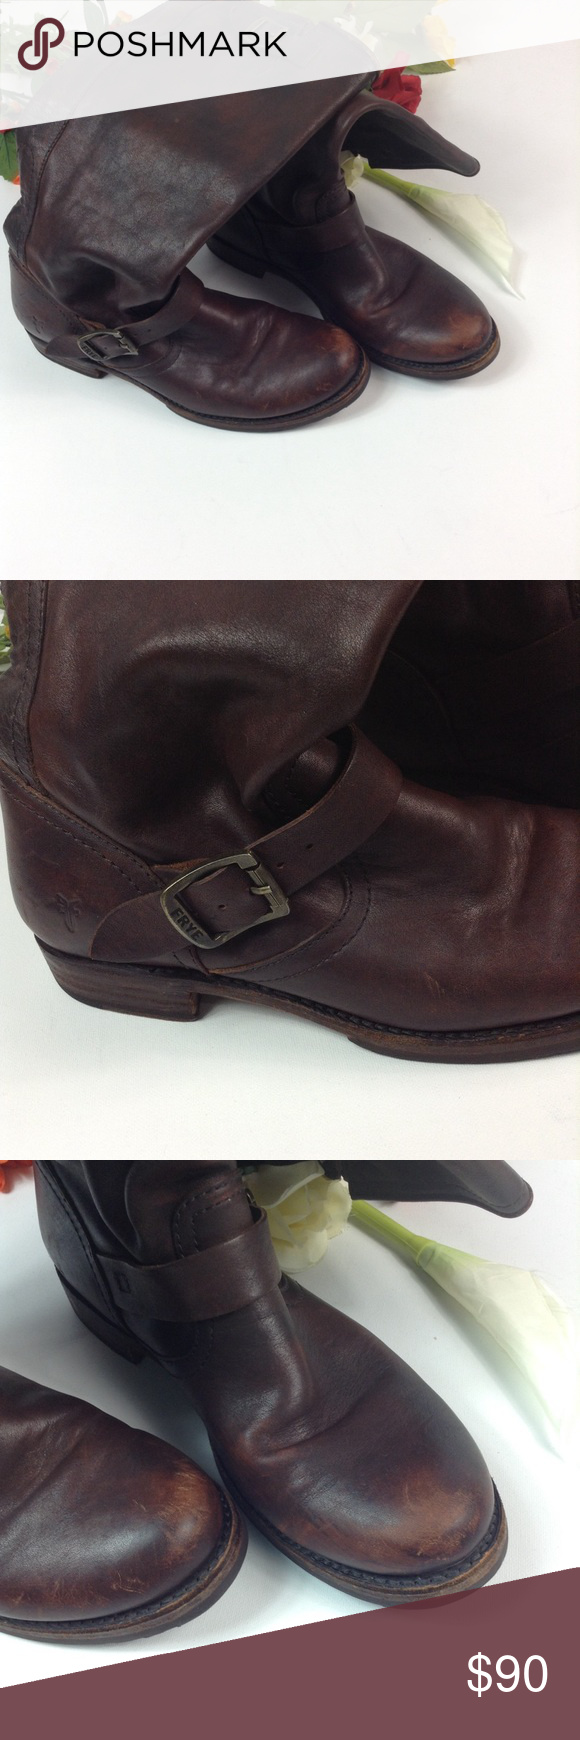 81ee749c2e07 FRYE Veronica Slouch boots Material  rugged leather Color  redwood Soft